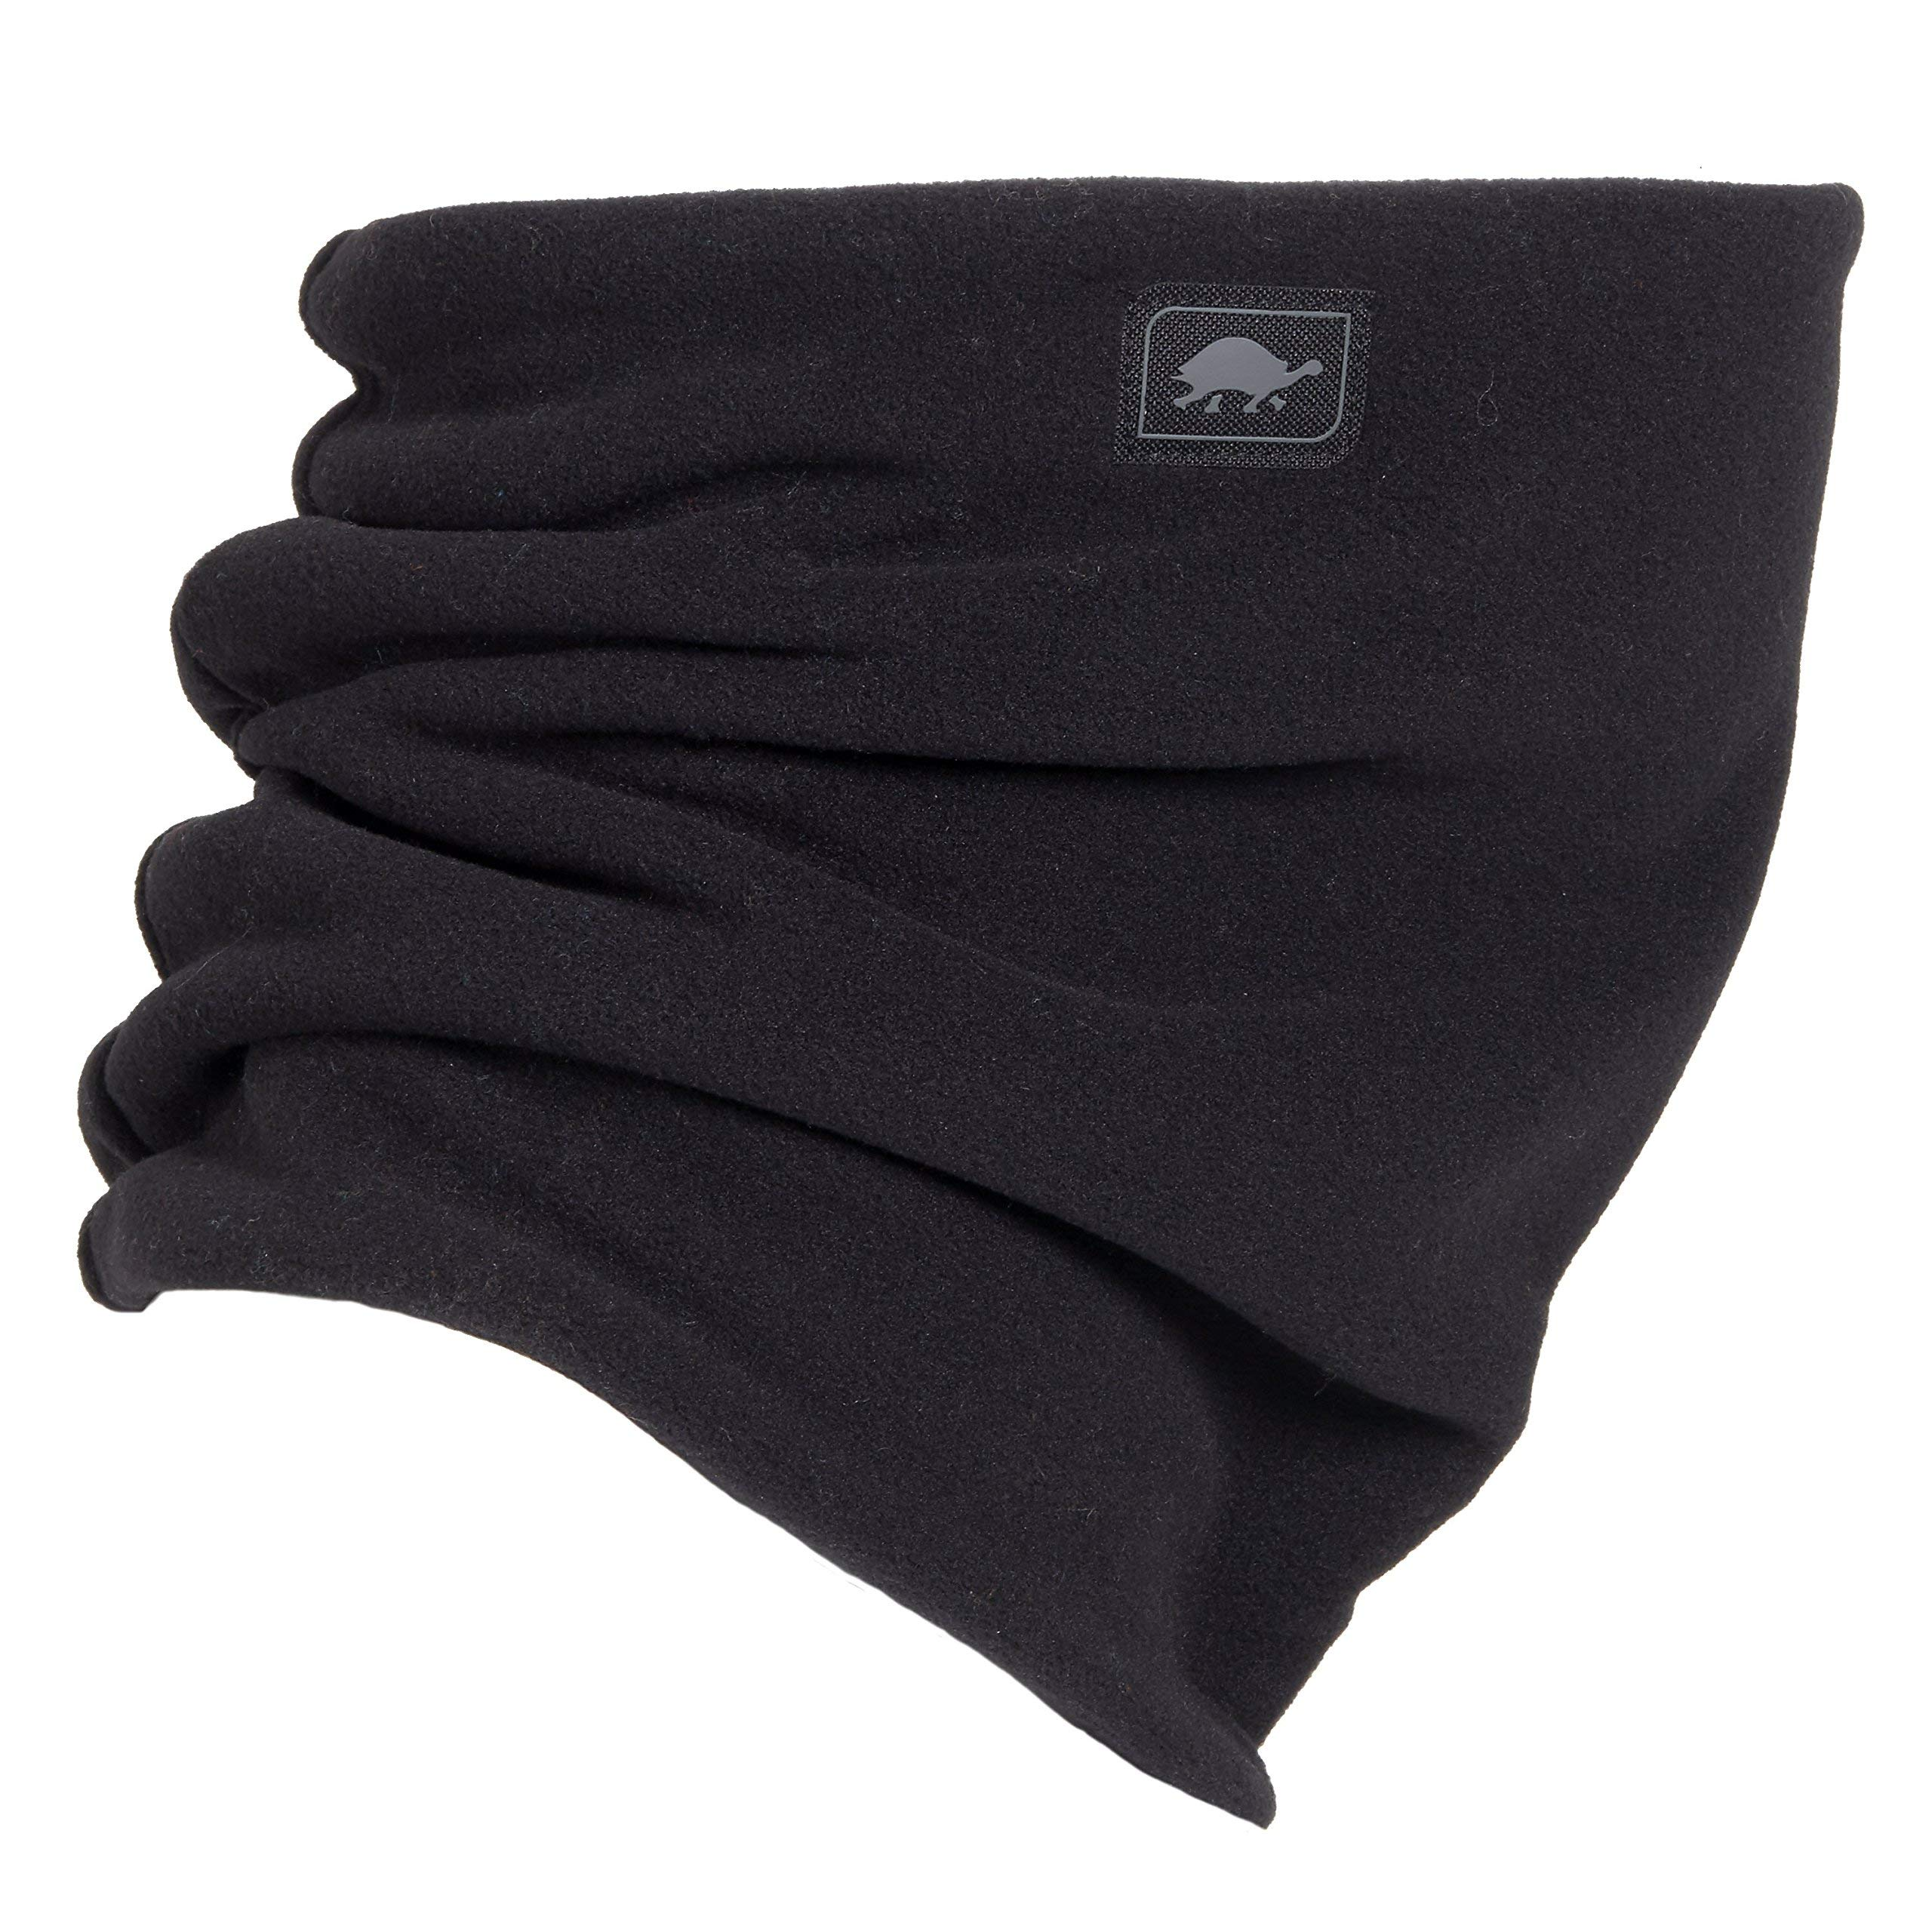 Turtle Fur Micro Fur Stretch Double Layer Neck Neckwarmer, Black by Turtle Fur (Image #1)